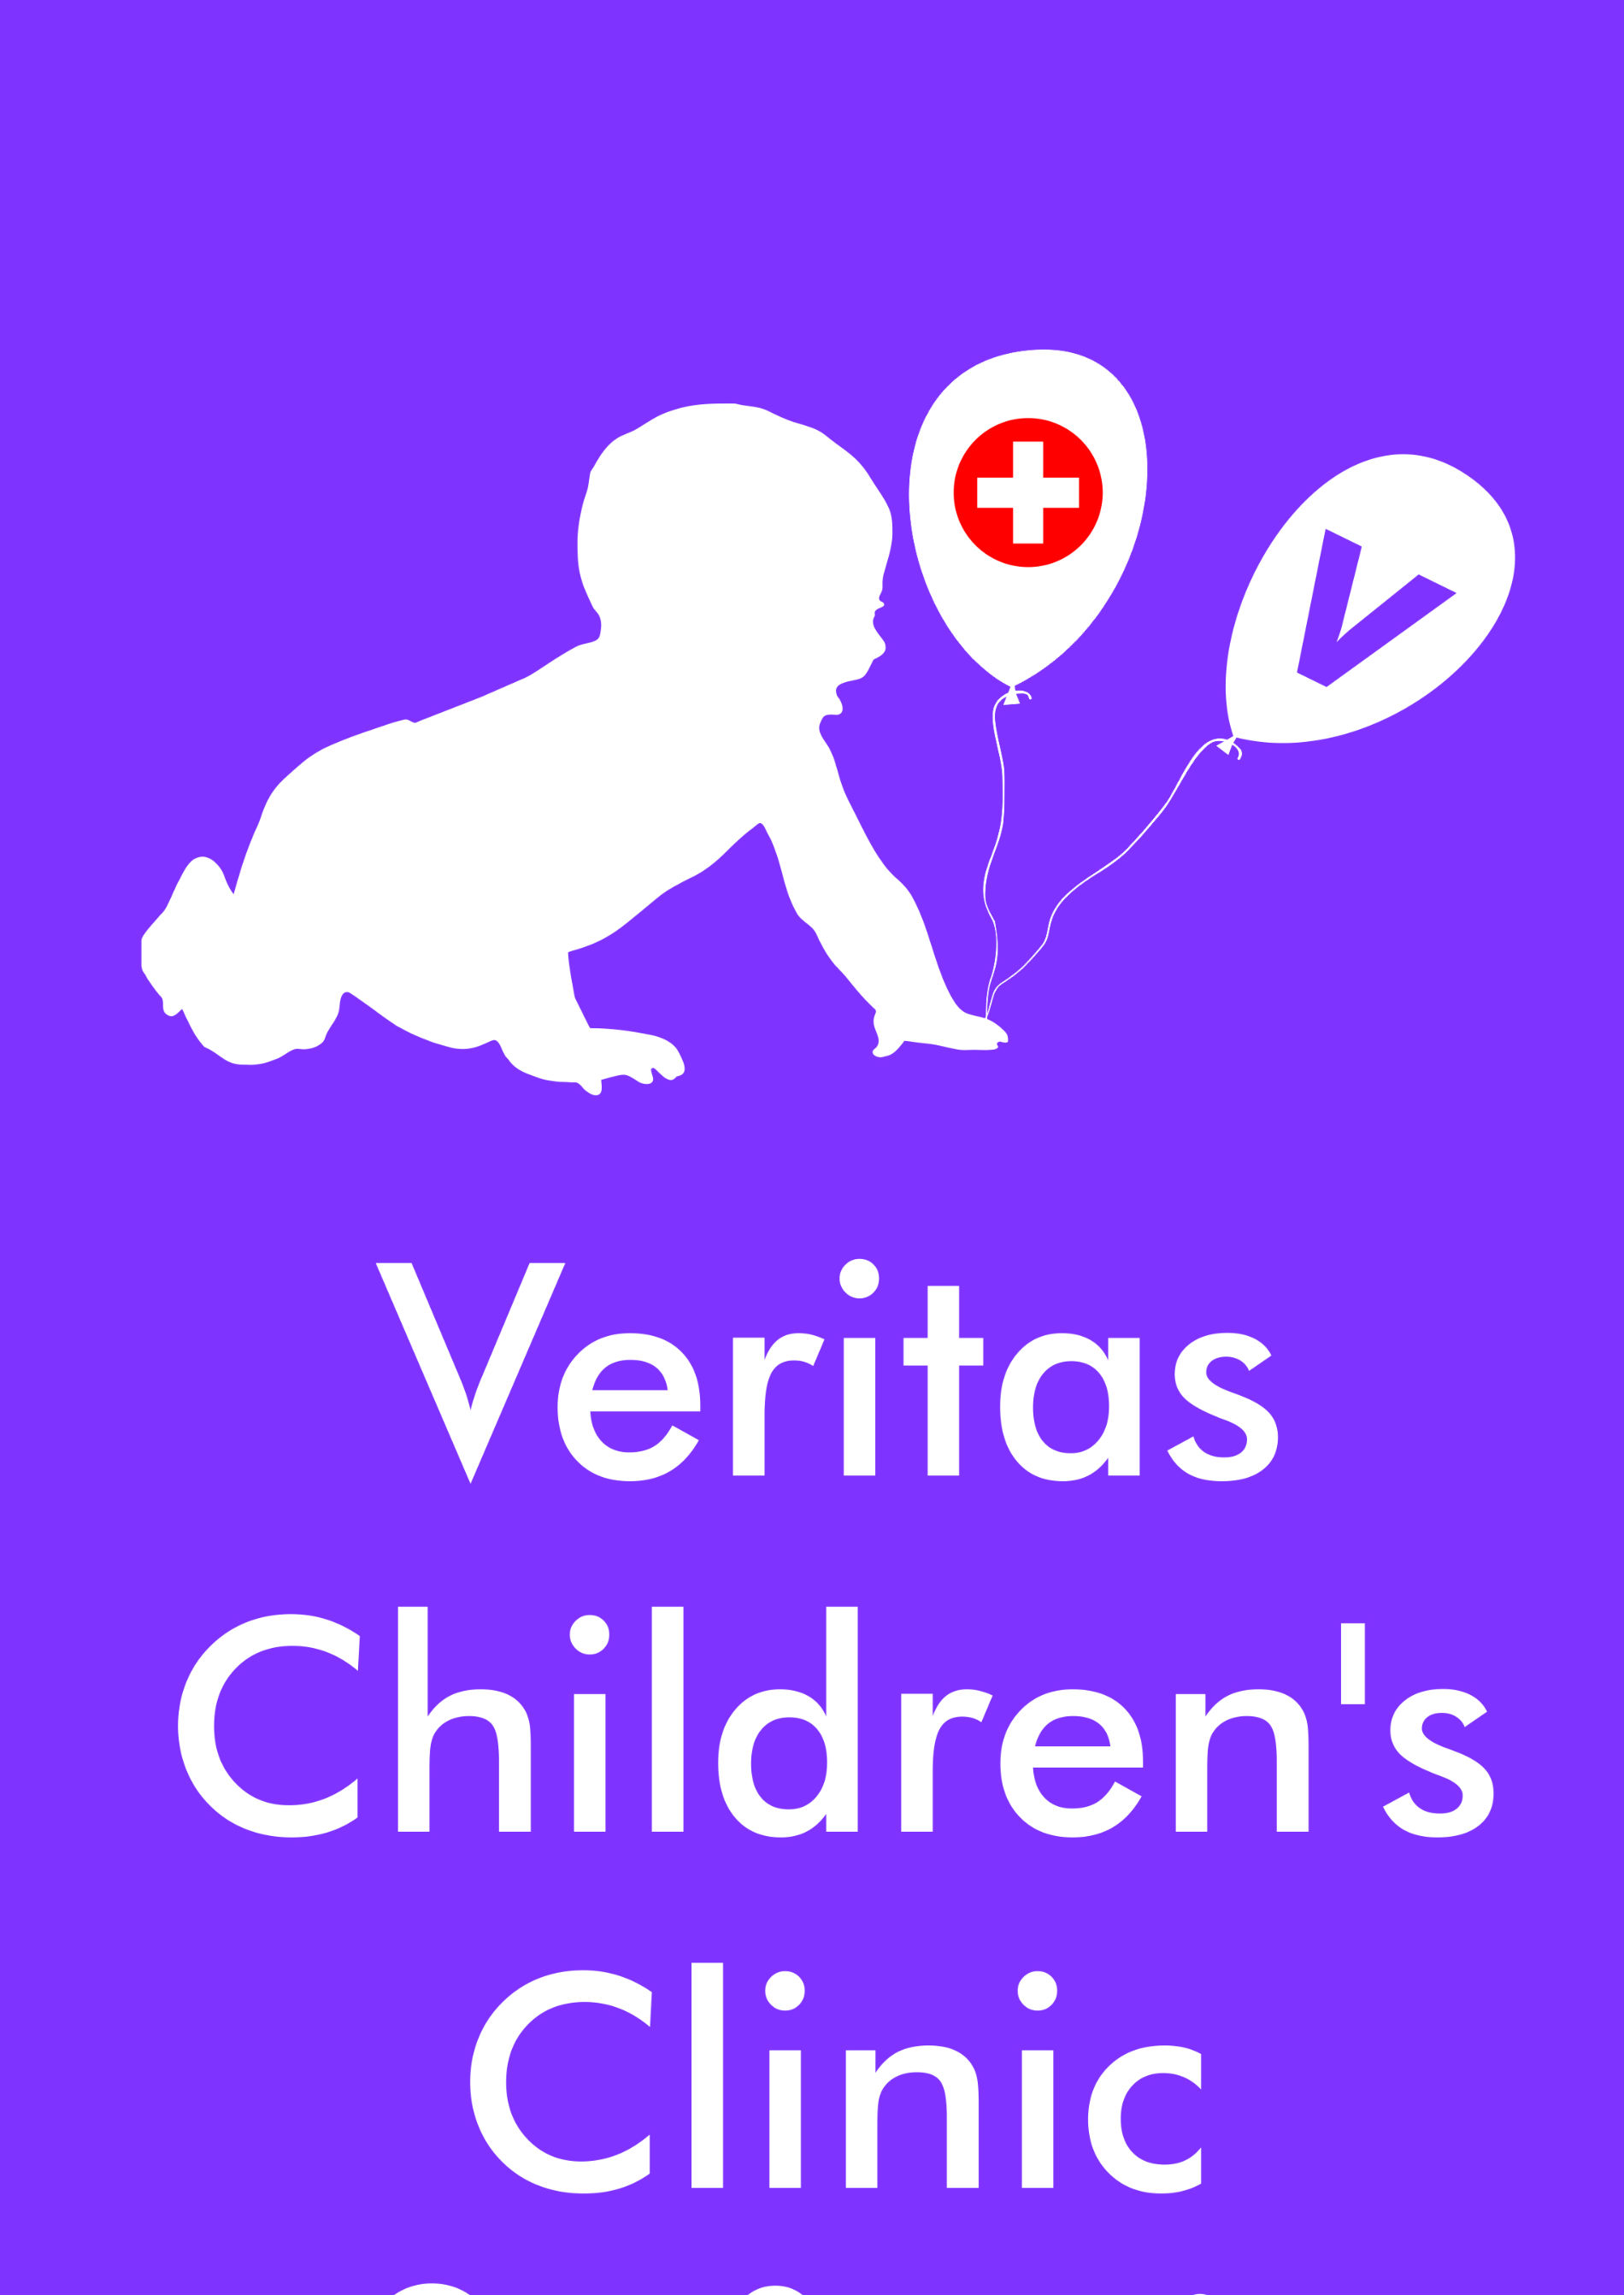 Veritas Children's Clinic